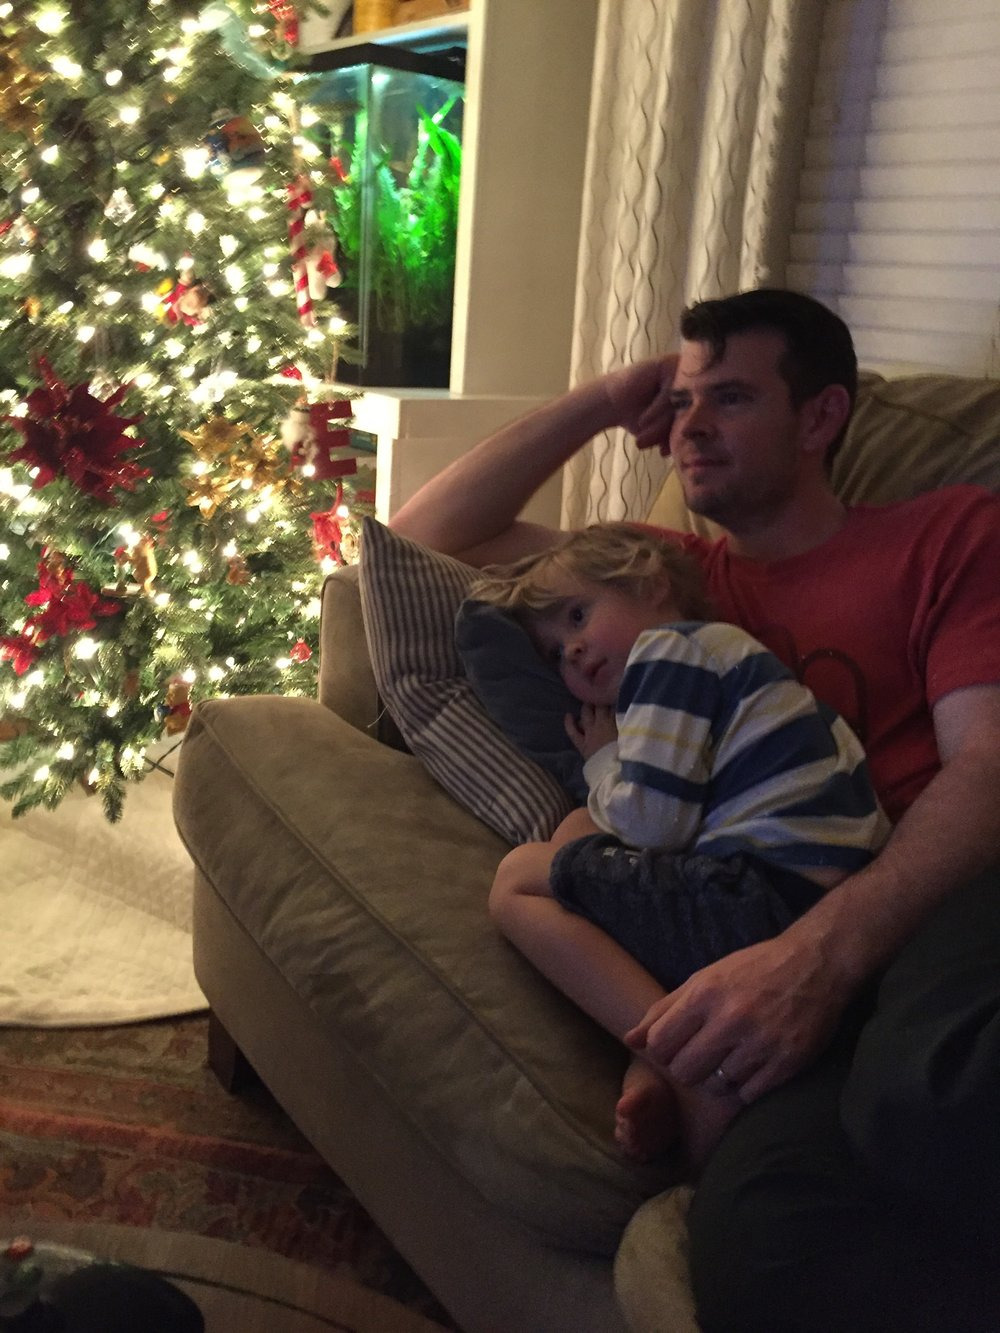 Watching a Christmas movie!